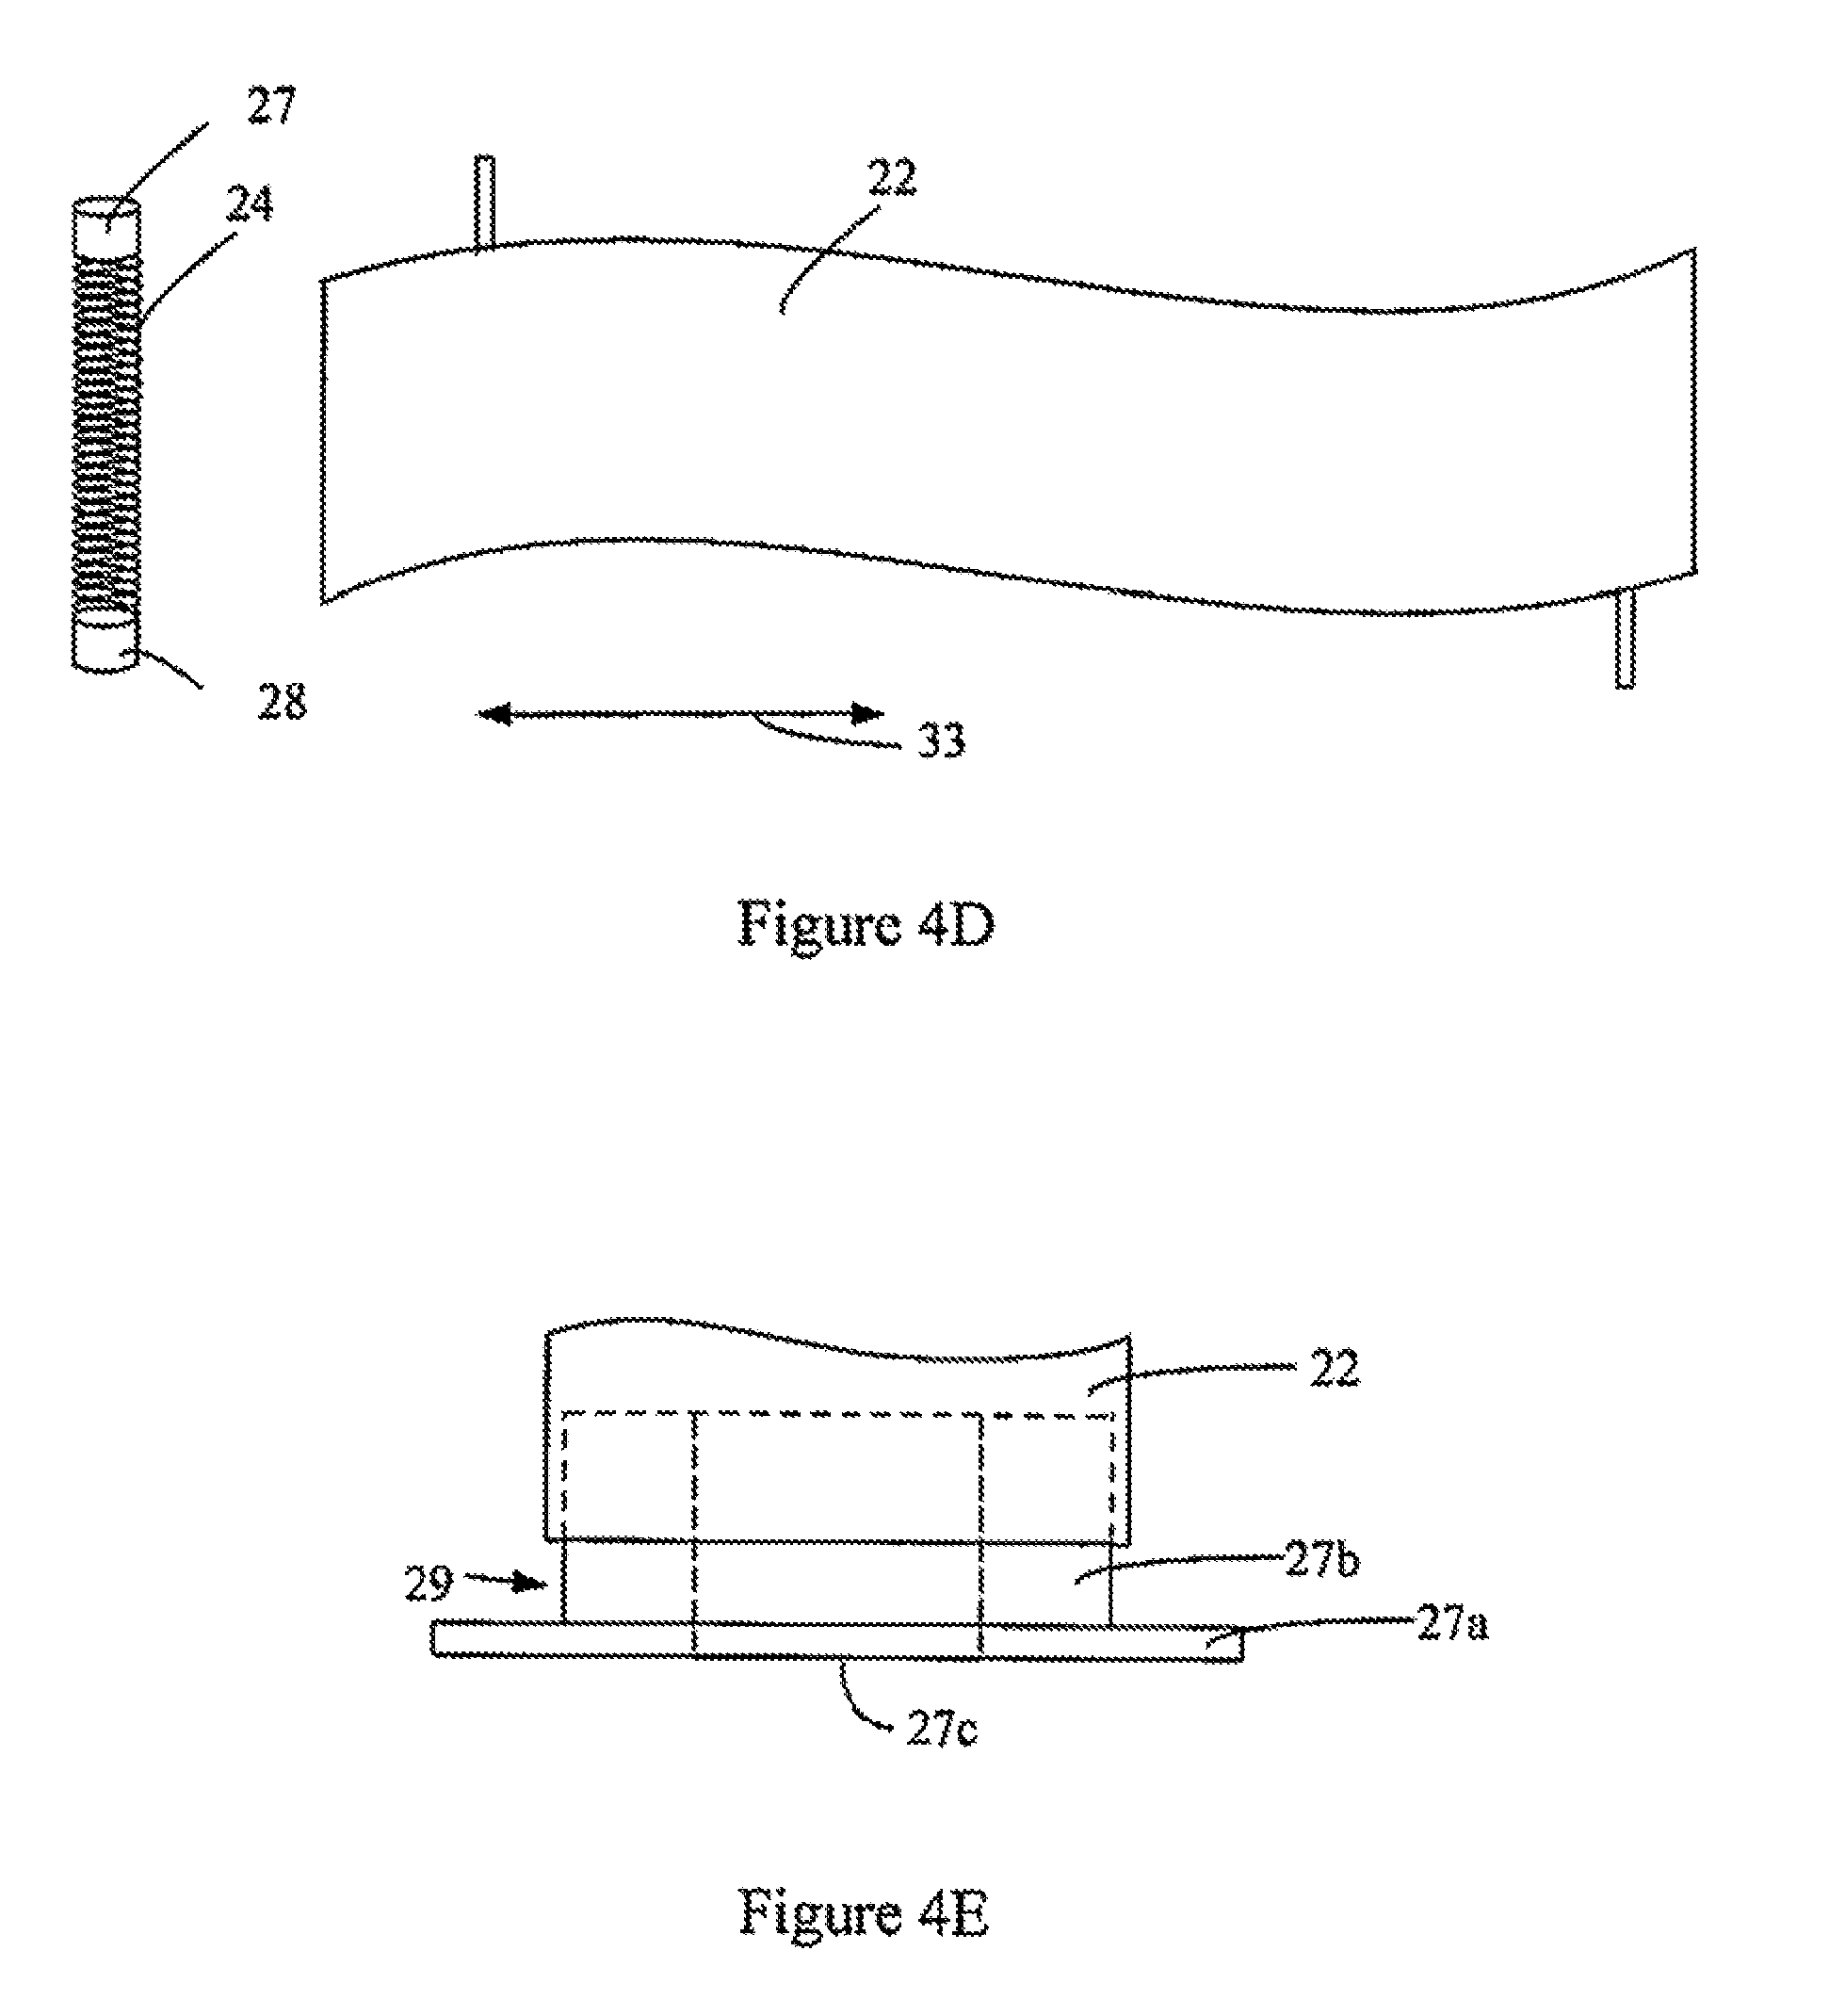 Patent Us7971850 Electroactive Polymer Devices For Controlling Current Raytheon Linear Integrated Circuits 1989 P 4247 Drawing